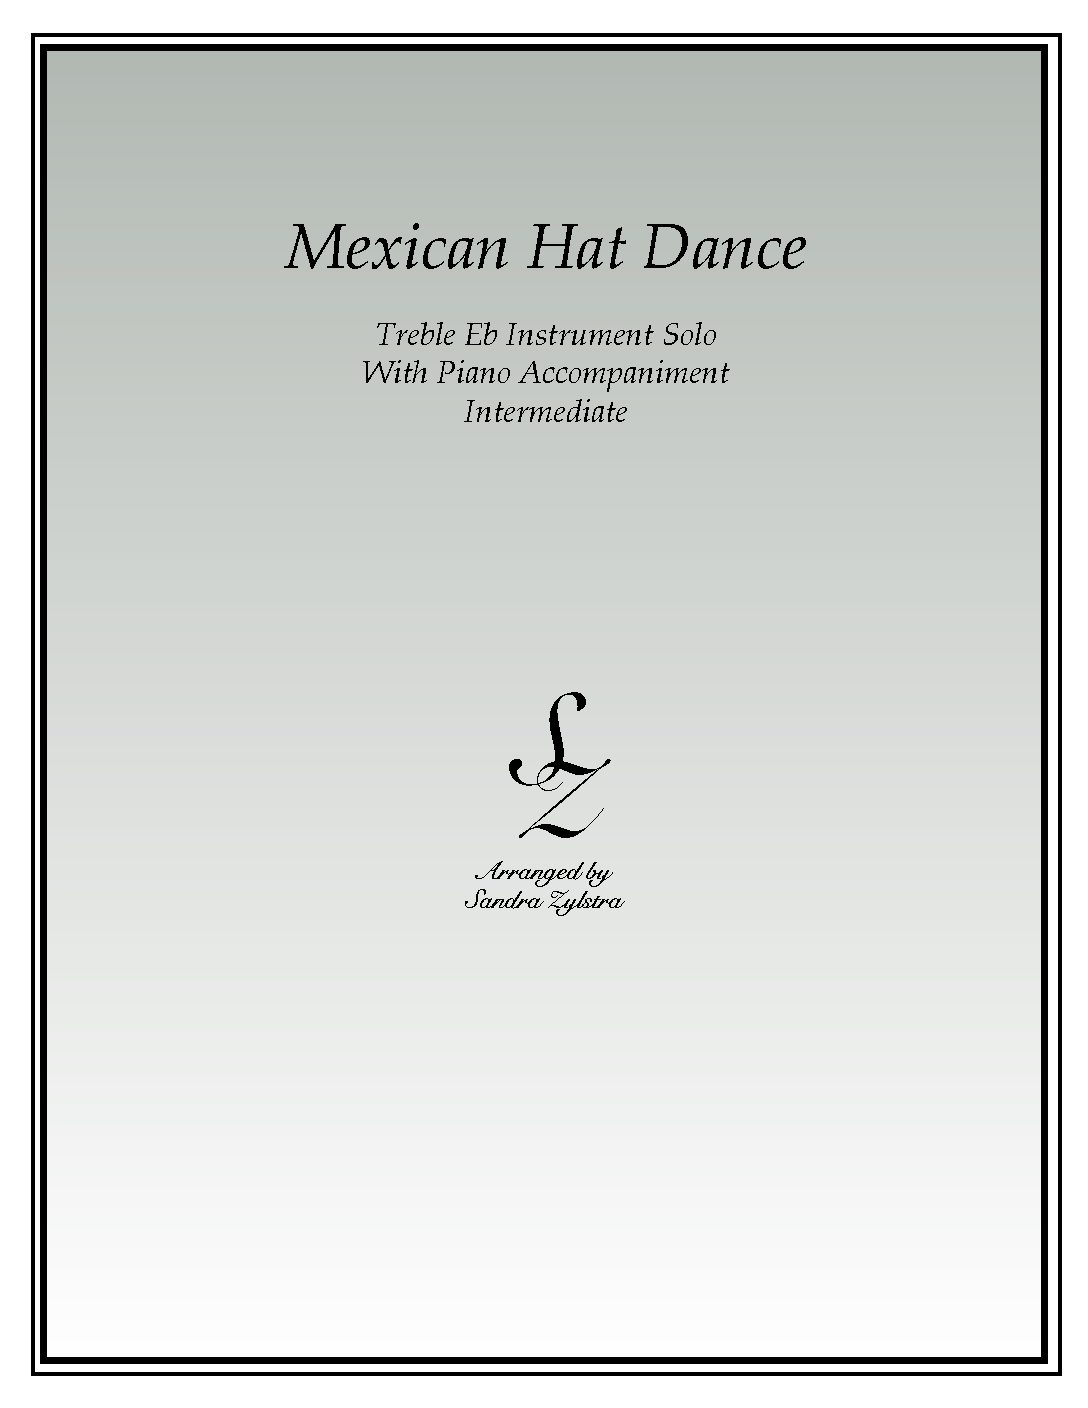 Mexican Hat Dance -Treble Eb Instrument Solo